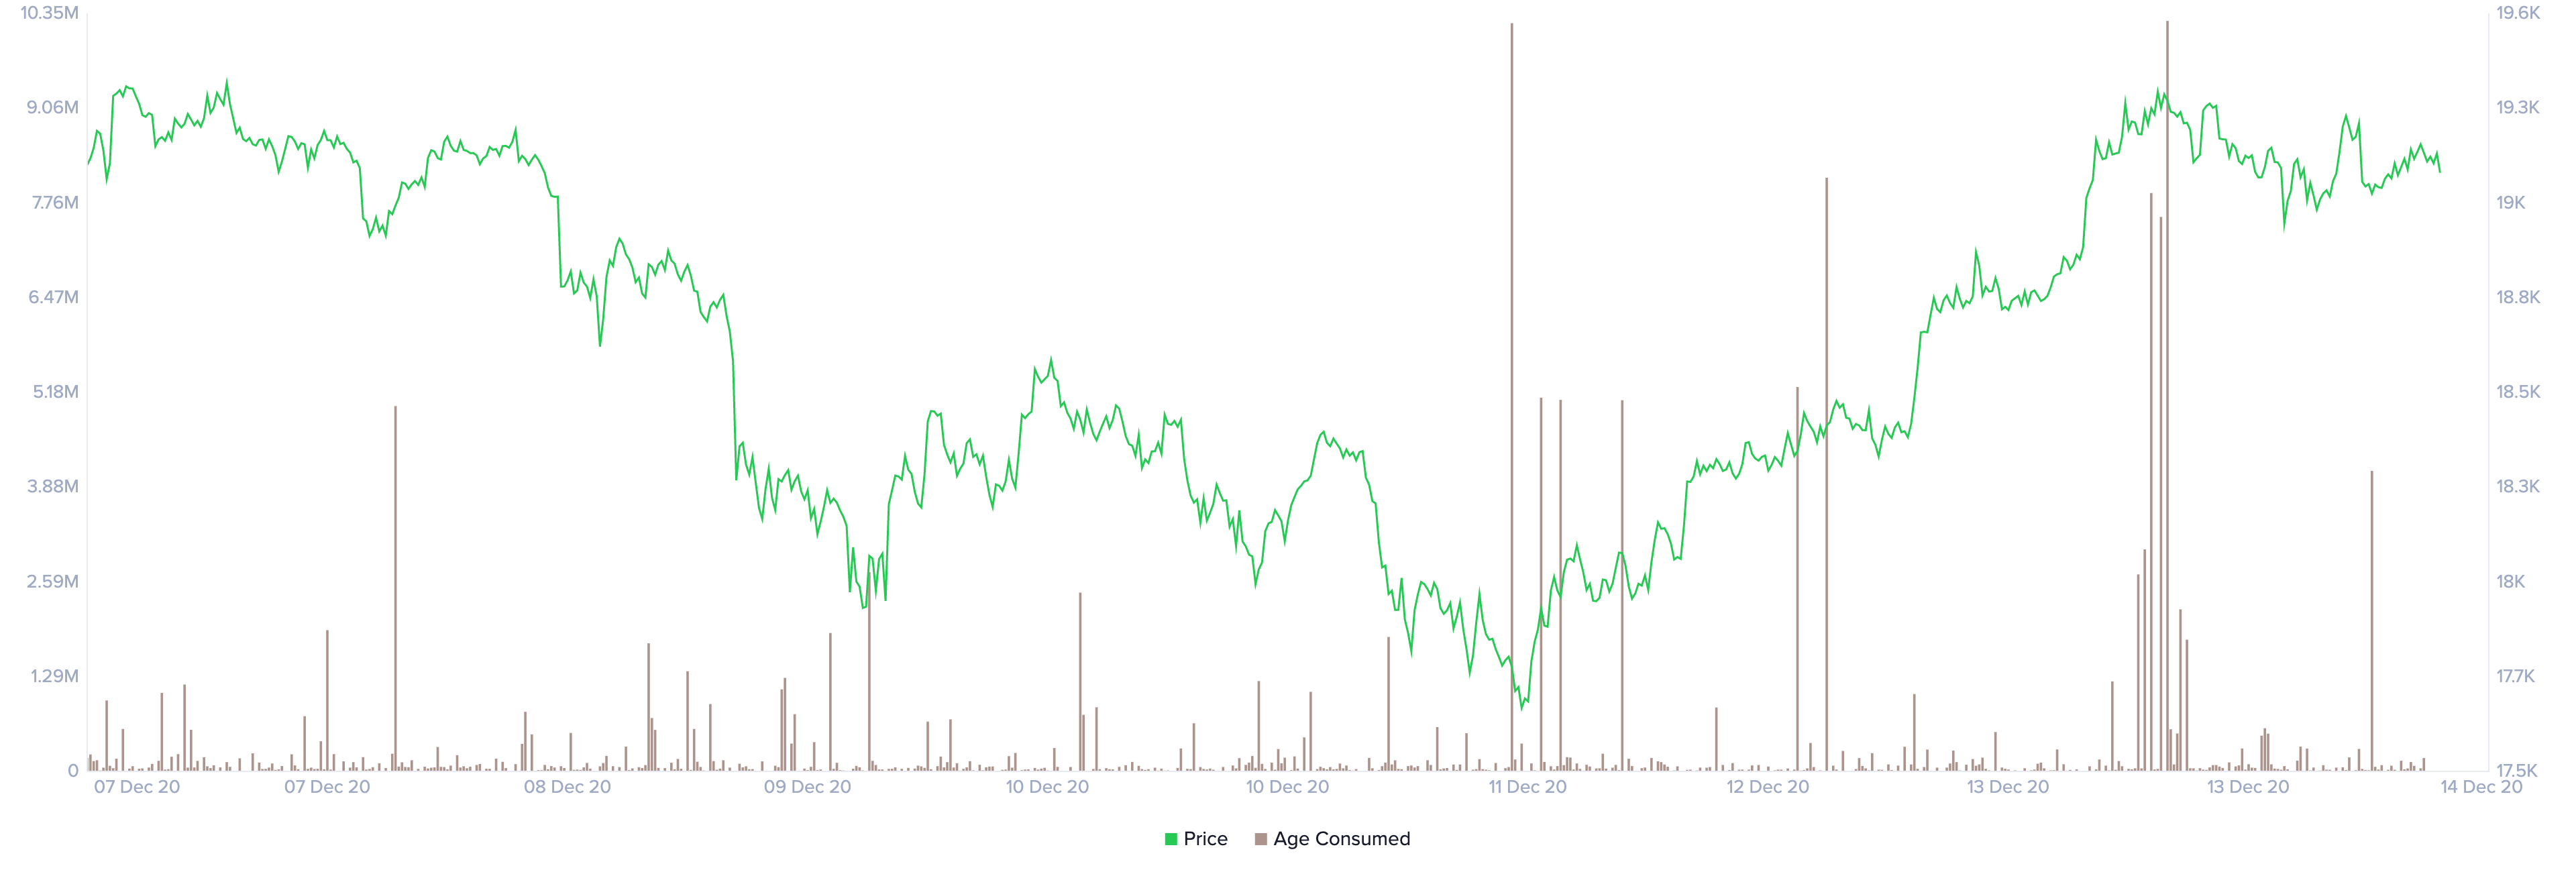 BTC's Age Consumed chart